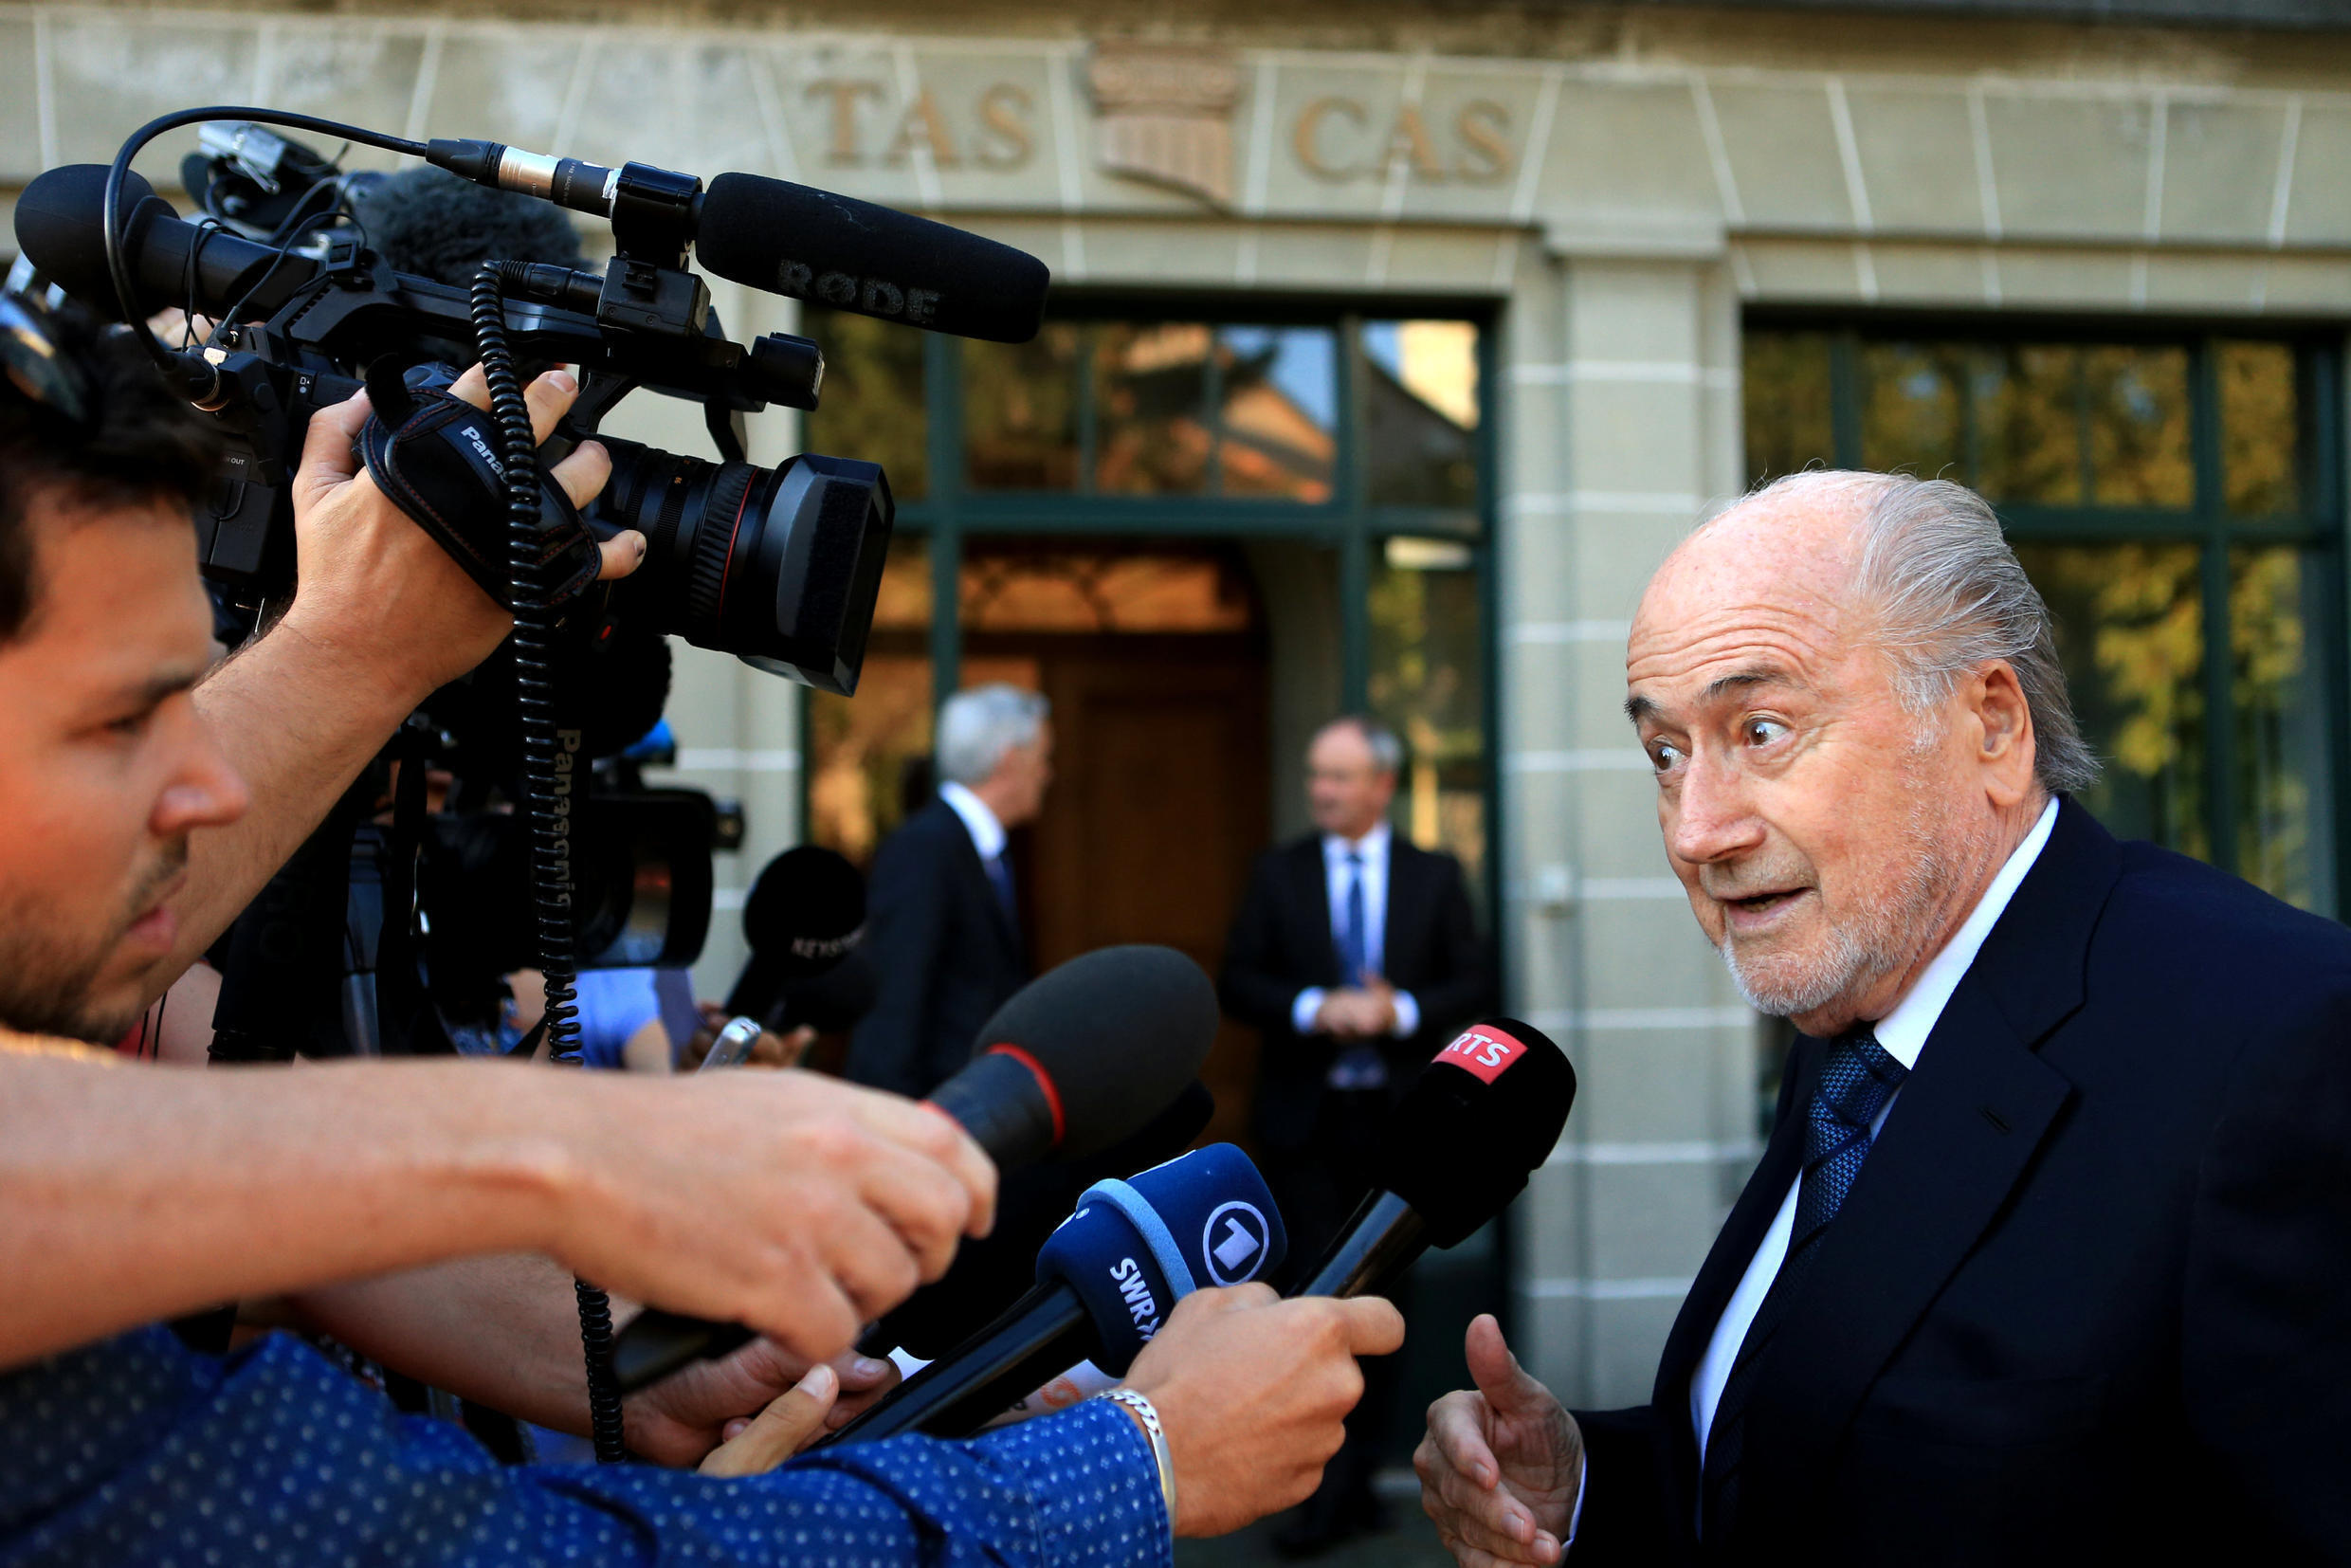 Sepp Blatter arrives at the Court of Arbitration for Sport (CAS) in Lausanne, Switzerland